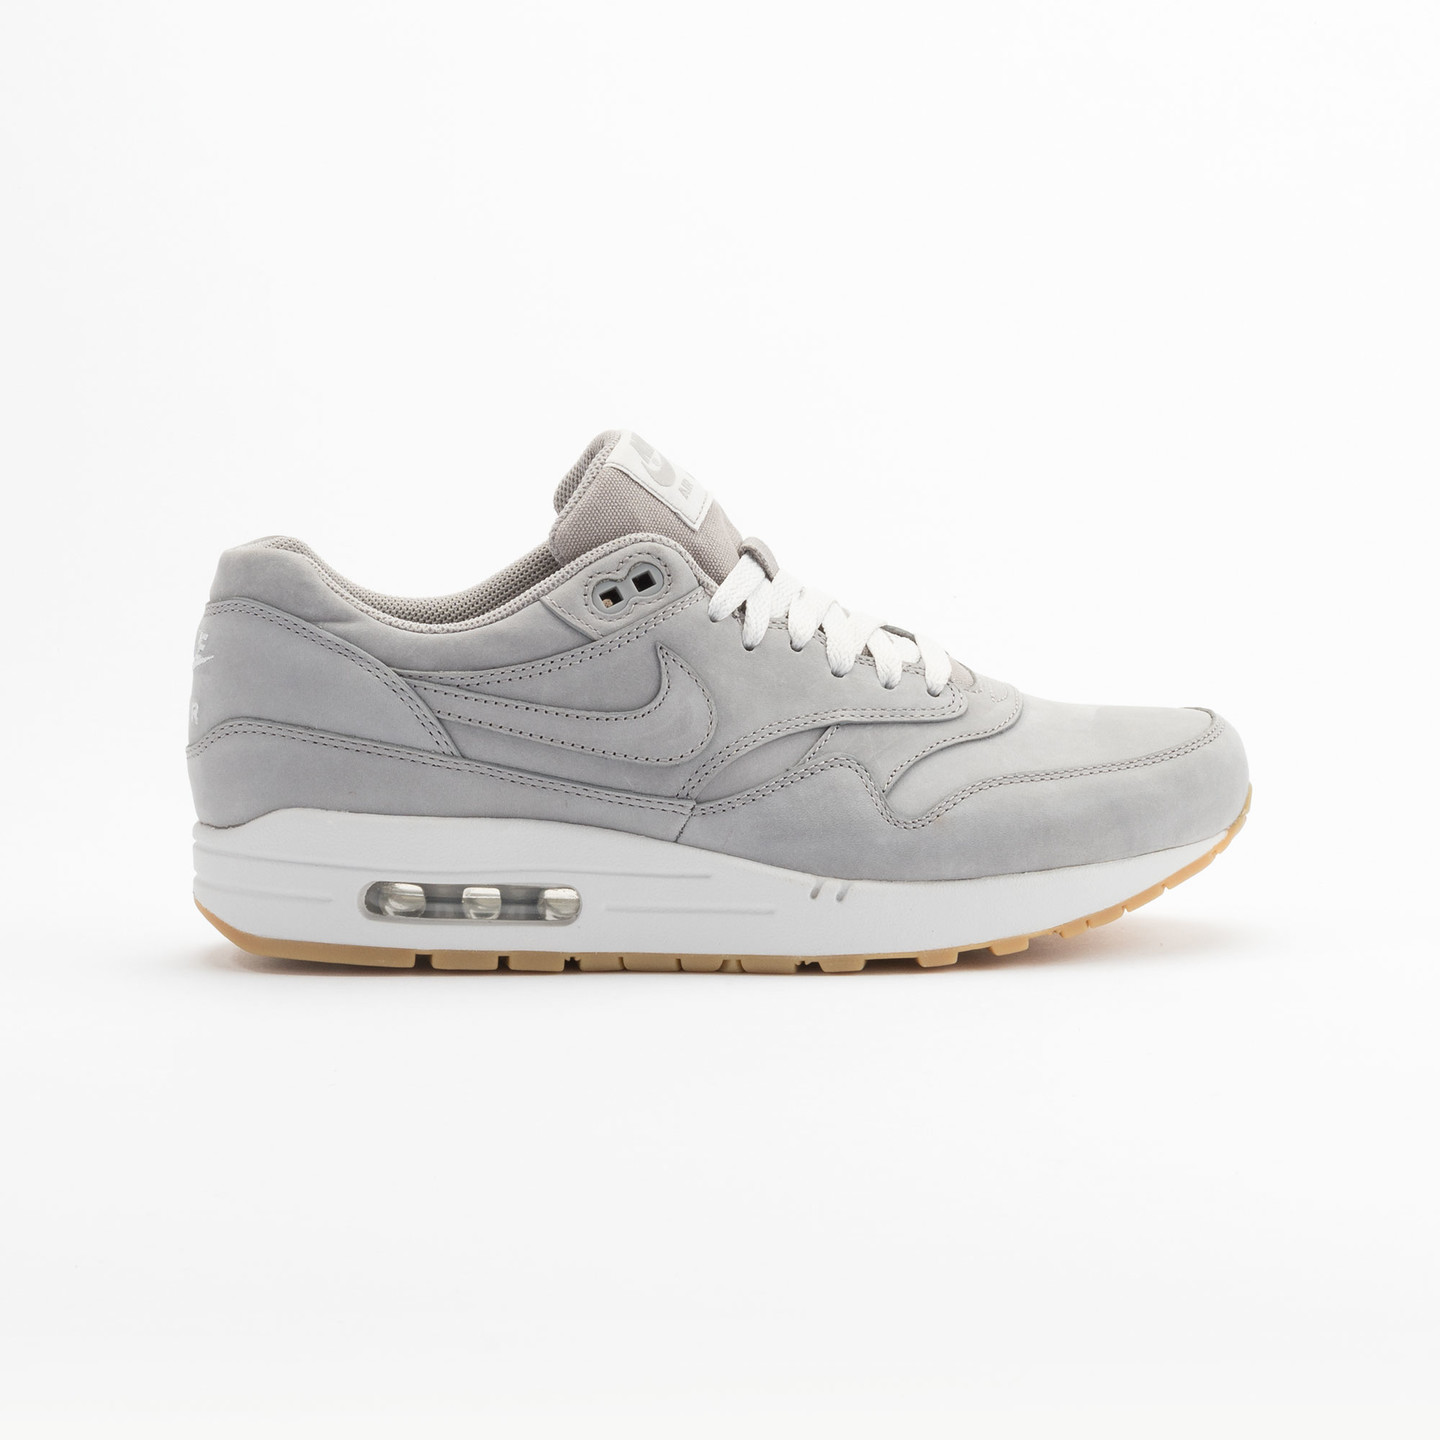 Nike Air Max Leather Premium Medium Grey 705282-005-44.5